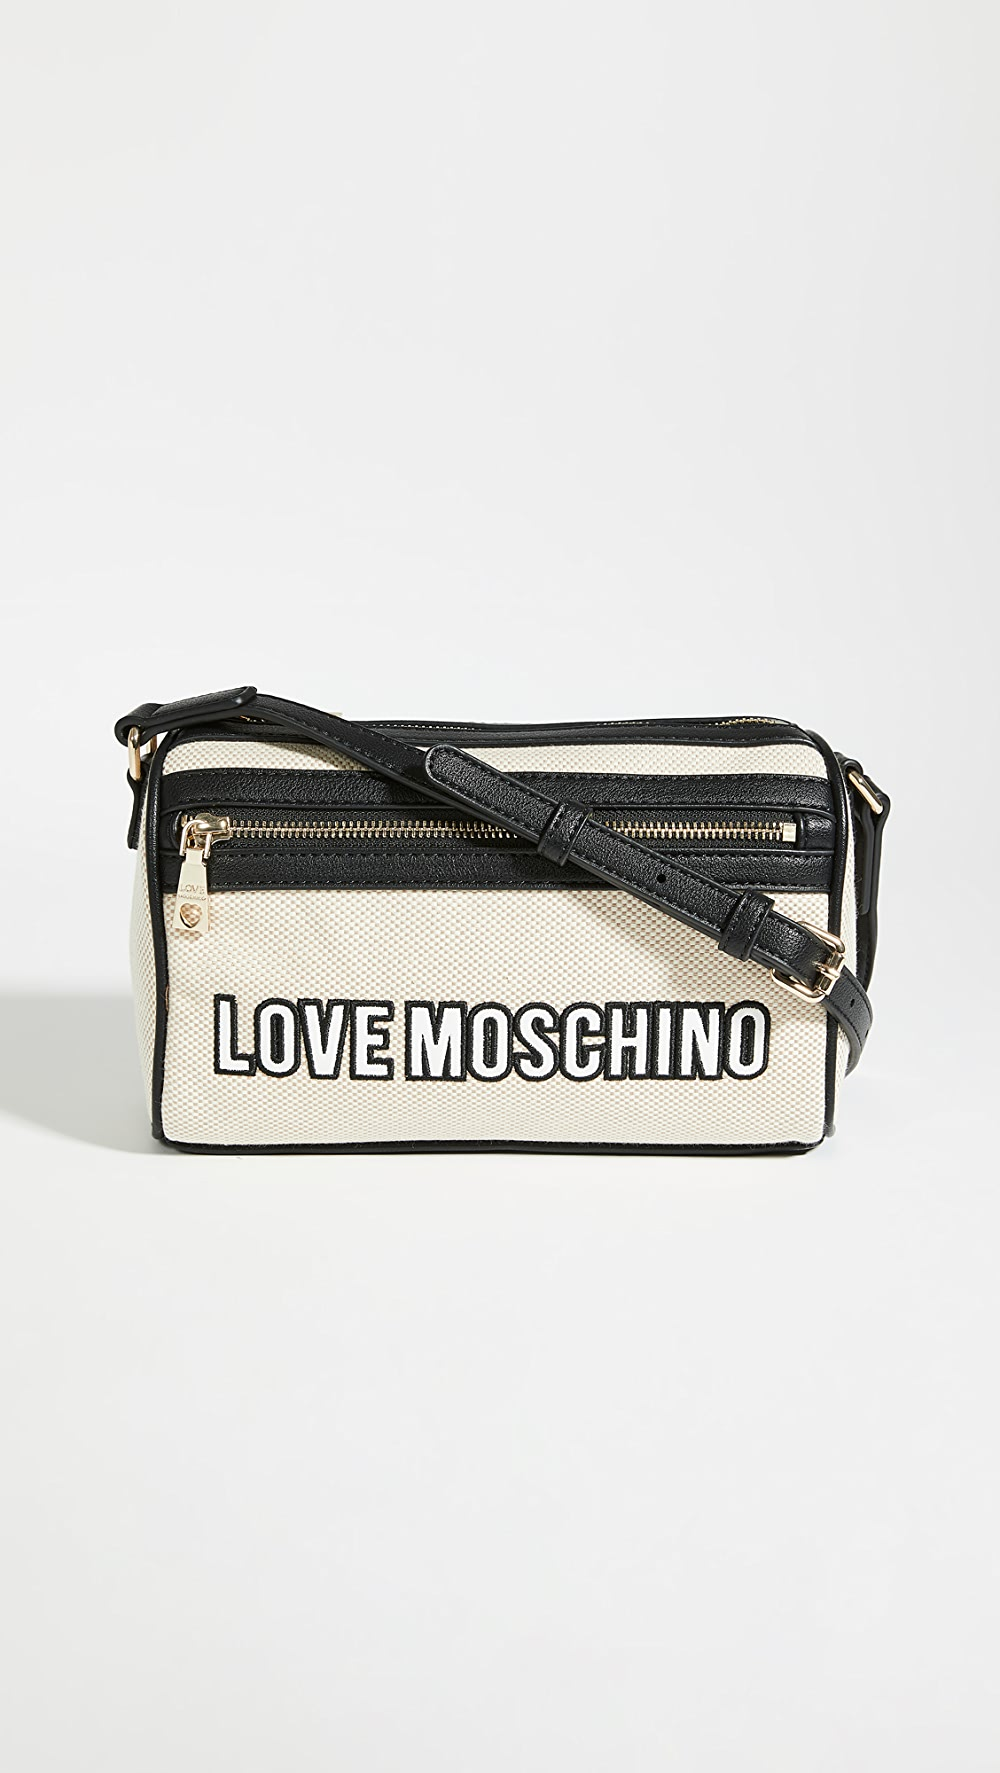 Aggressive Moschino - Love Moschino Canvas Crossbody Bag Top Watermelons